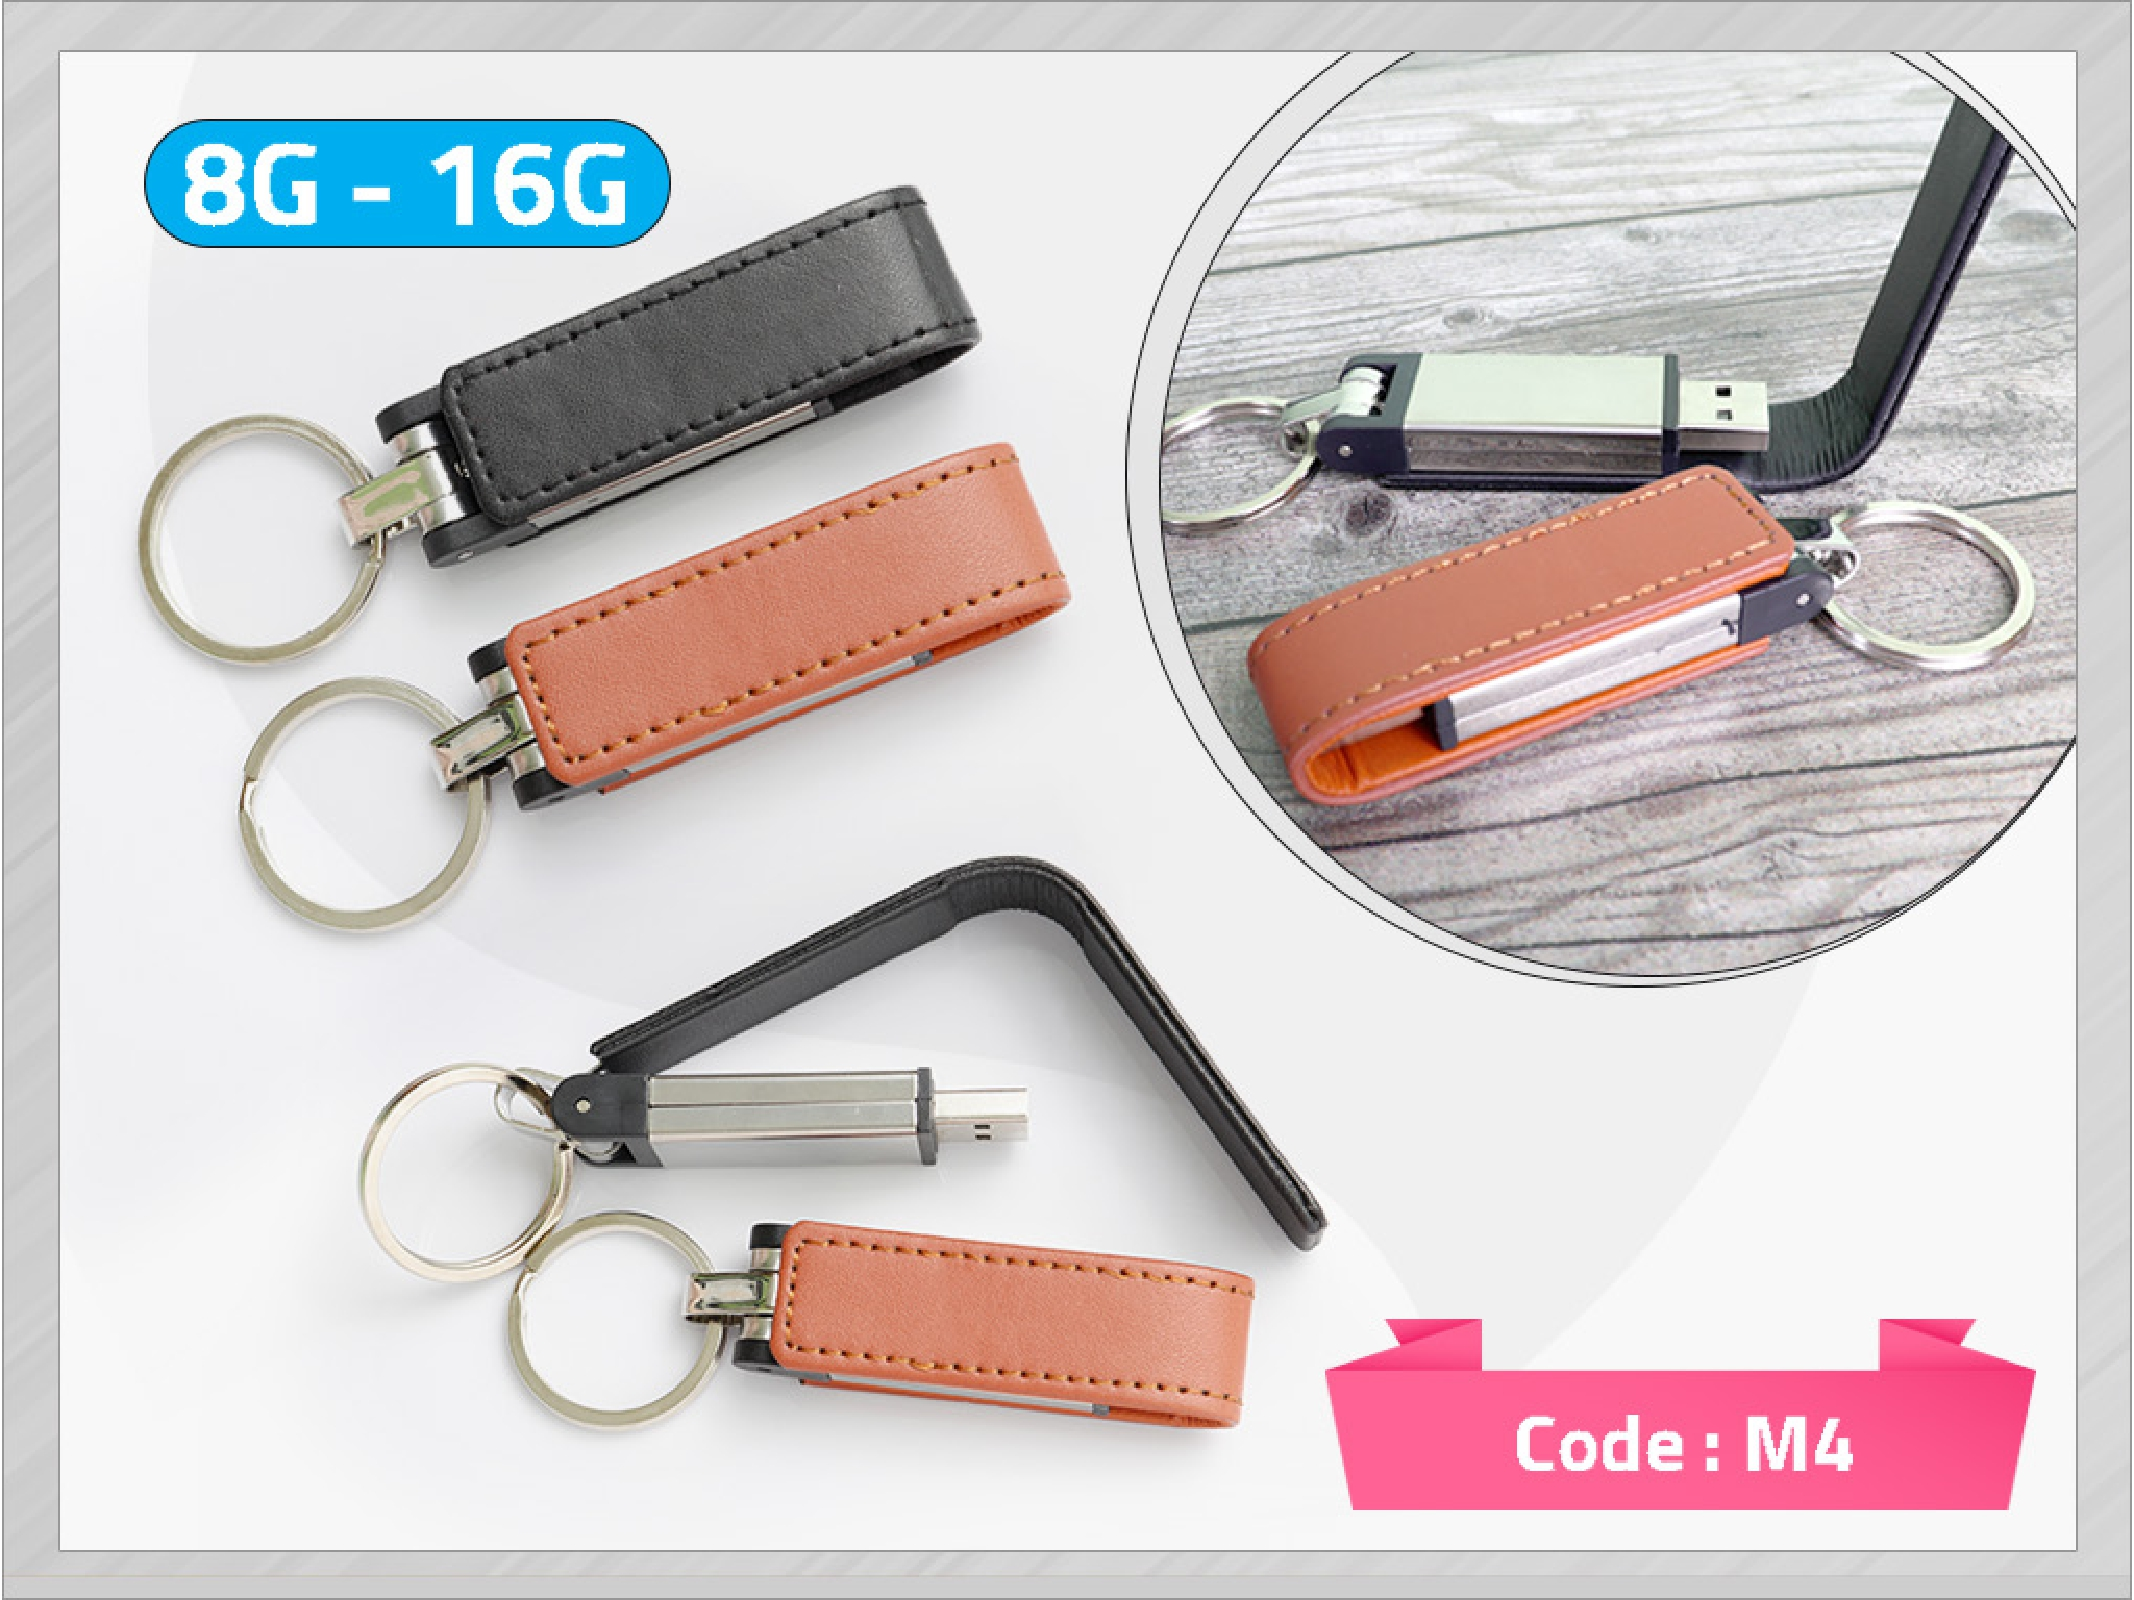 3-usb-flash-34-new_page-0035